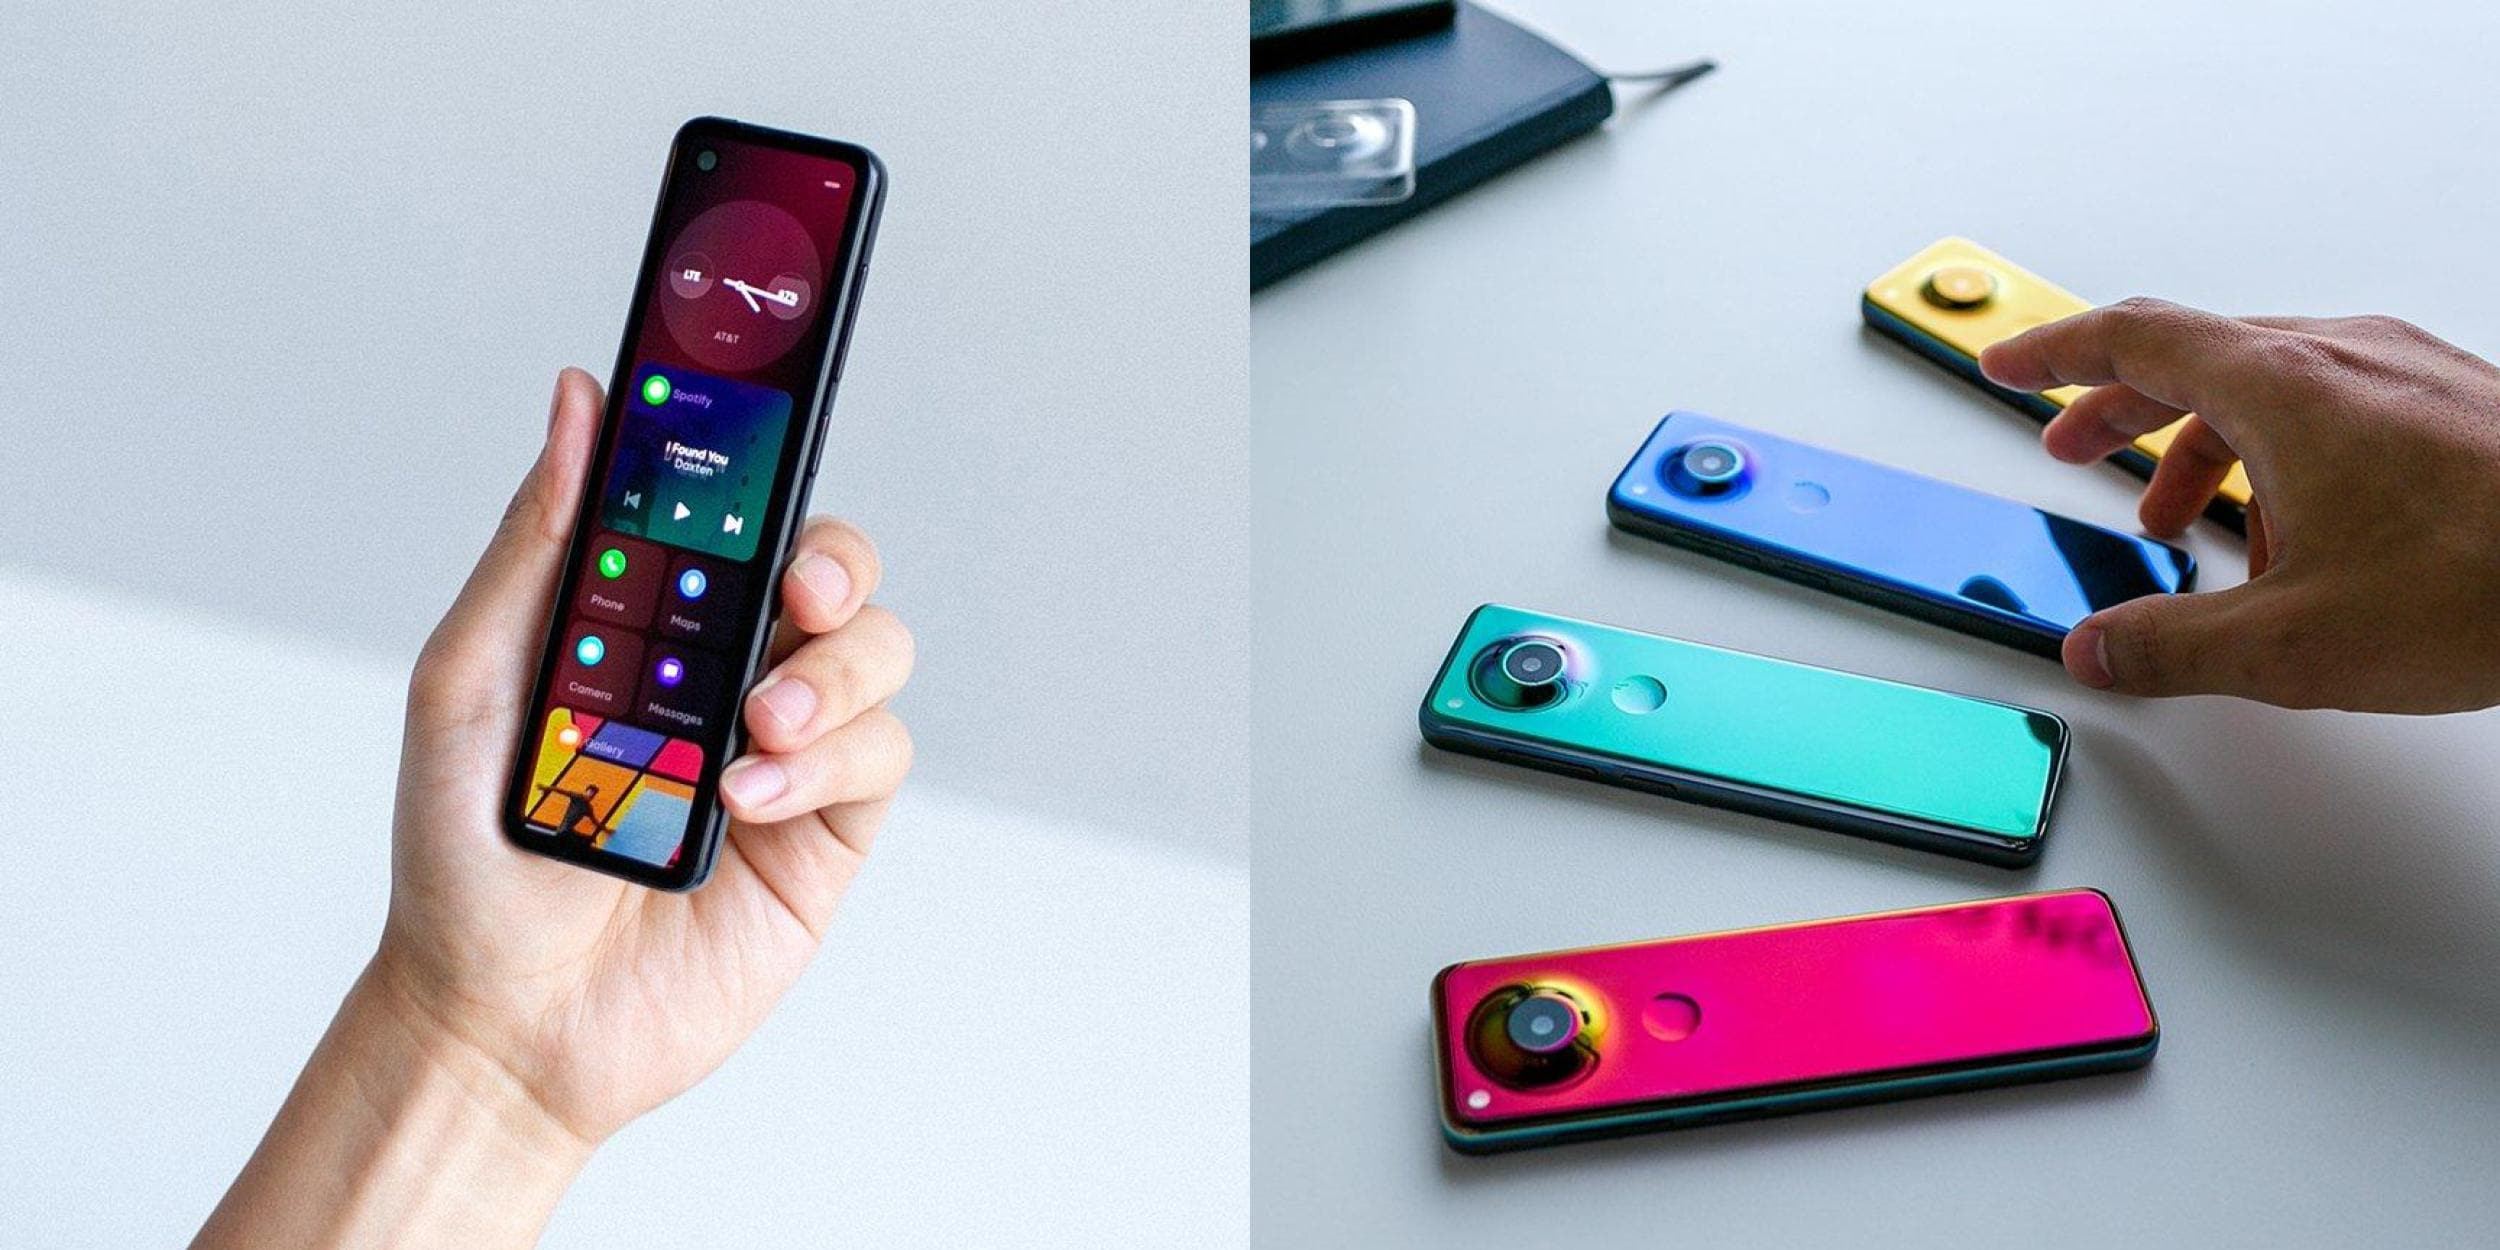 Essential's Project Gem